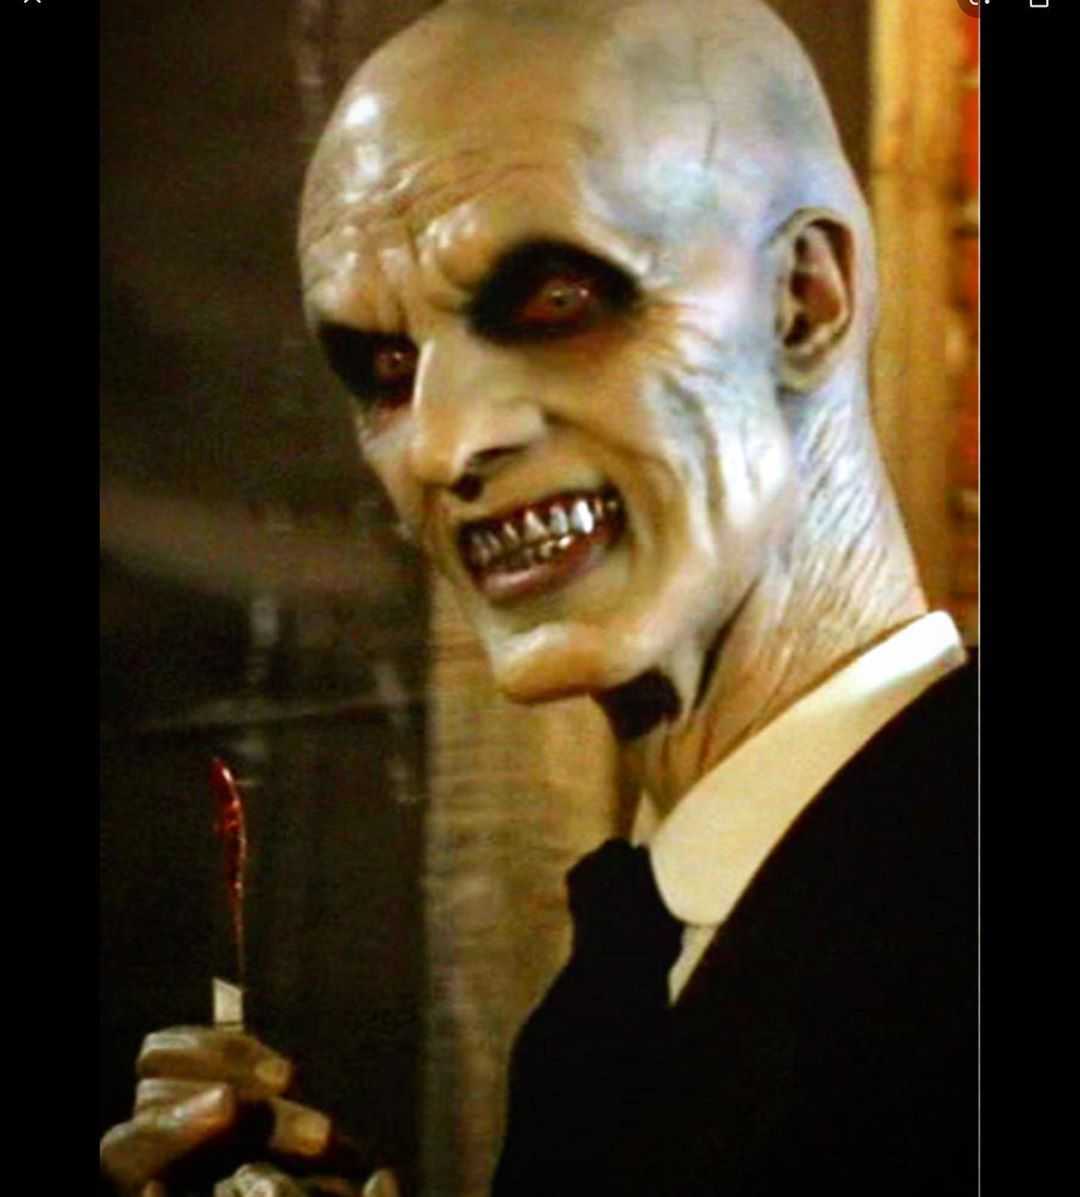 """#TBT Hard to believe it's been 20 years since I first showed up in the 1999 """"Hush"""" episode of Buffy The Vampire Slayer episode as the leader of """"The Gentlemen"""". Makeup by Optic Nerve and Todd Mackentosh. <br>http://pic.twitter.com/tFdDam9QOY"""